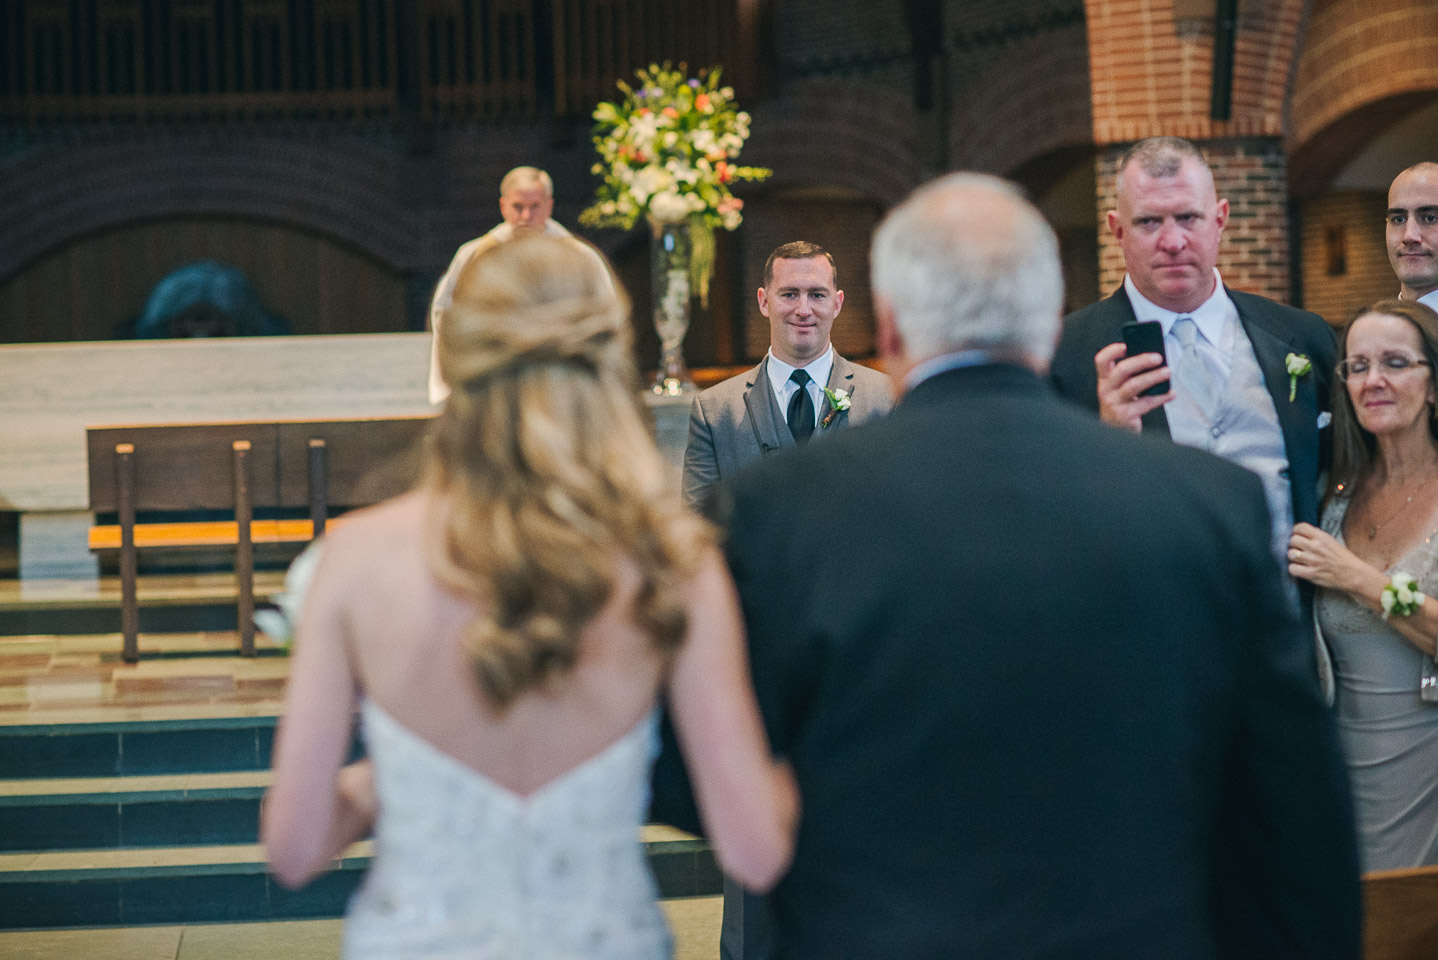 NH Wedding Photography: groom seeing bride first time